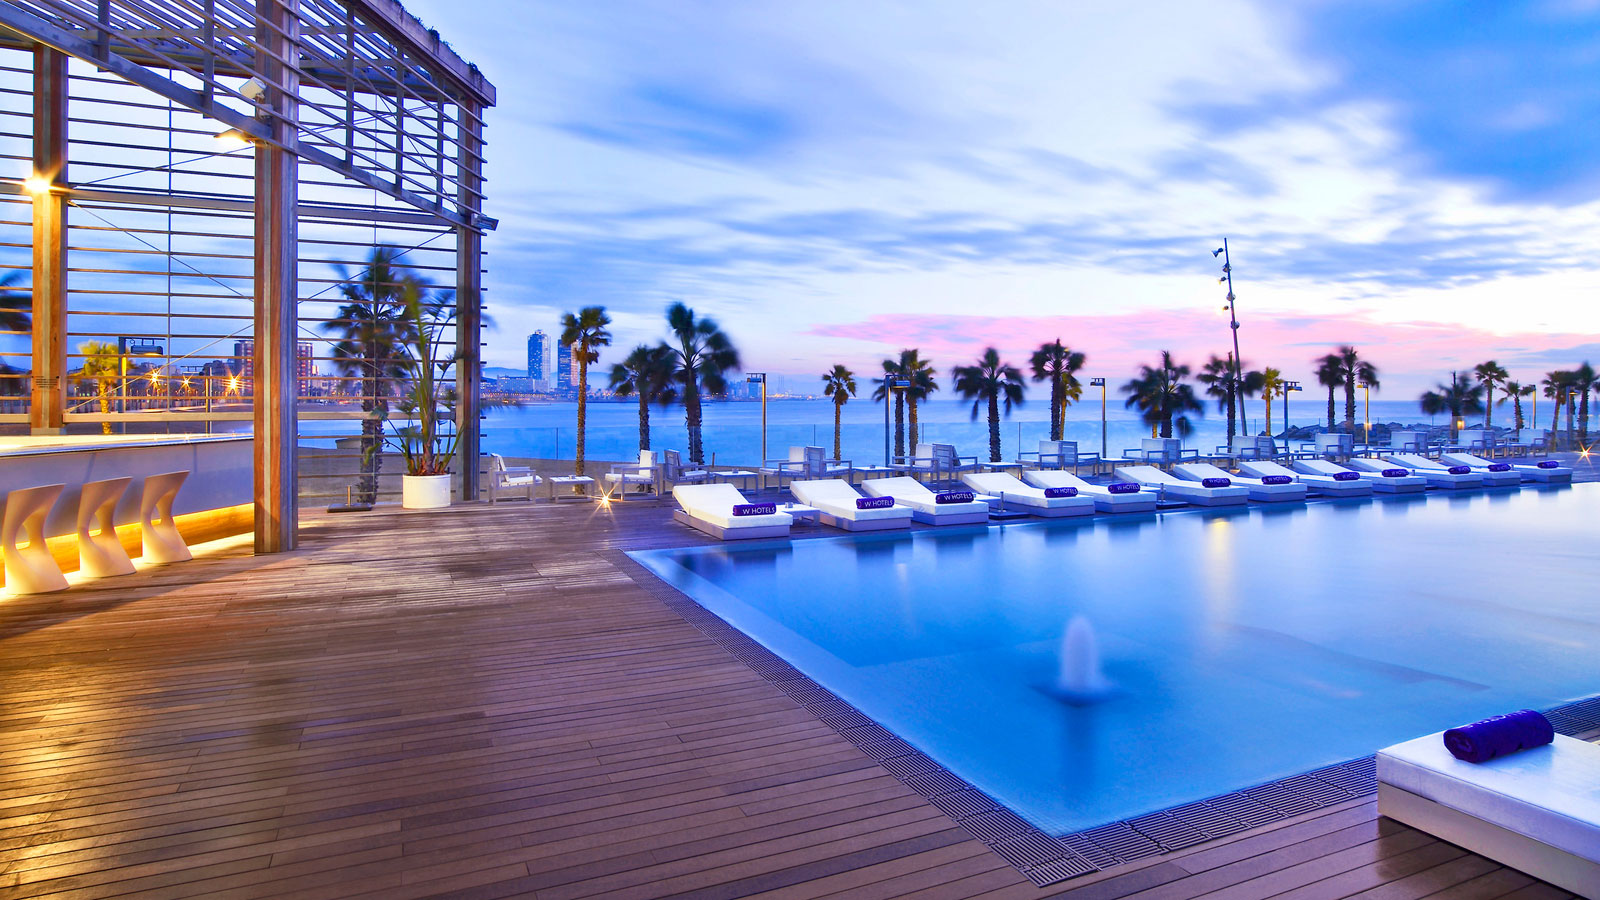 The w hotel in barcelona by ricardo bofill architecture - Hotel ayre rosellon en barcelona ...